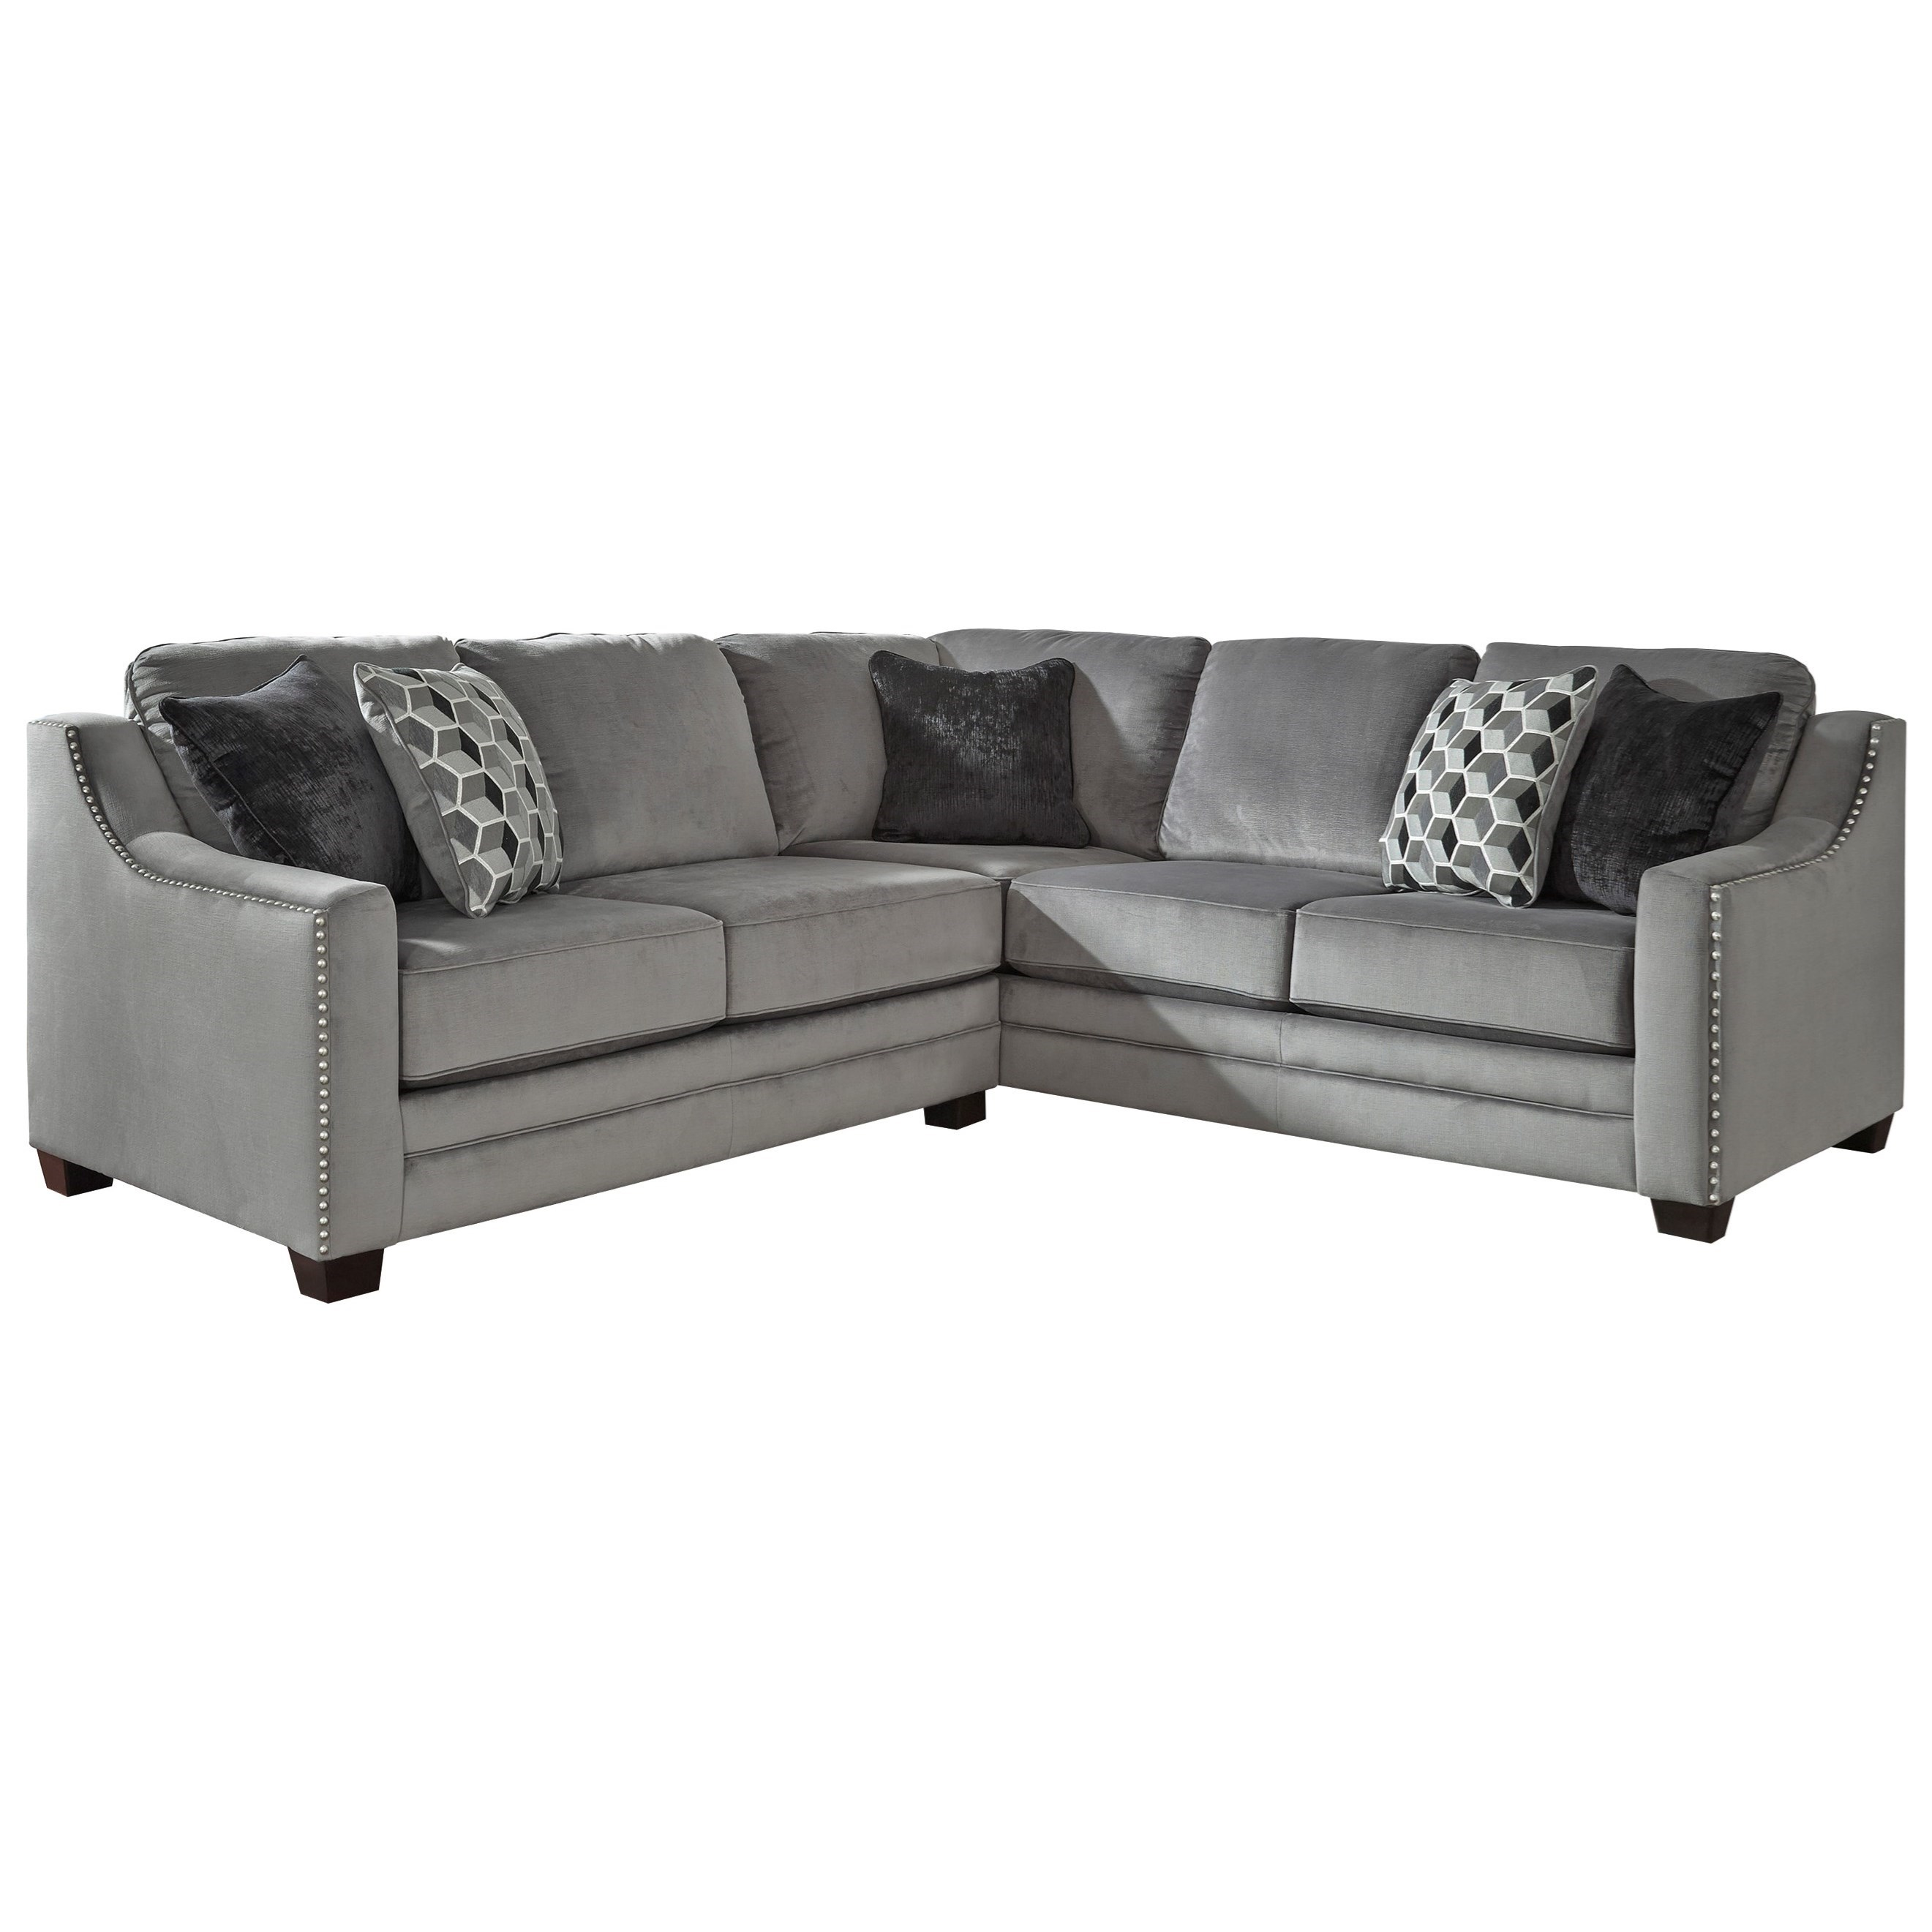 Benchcraft bicknell contemporary 2 piece sectional with for 2 piece sectional sofa with recliner